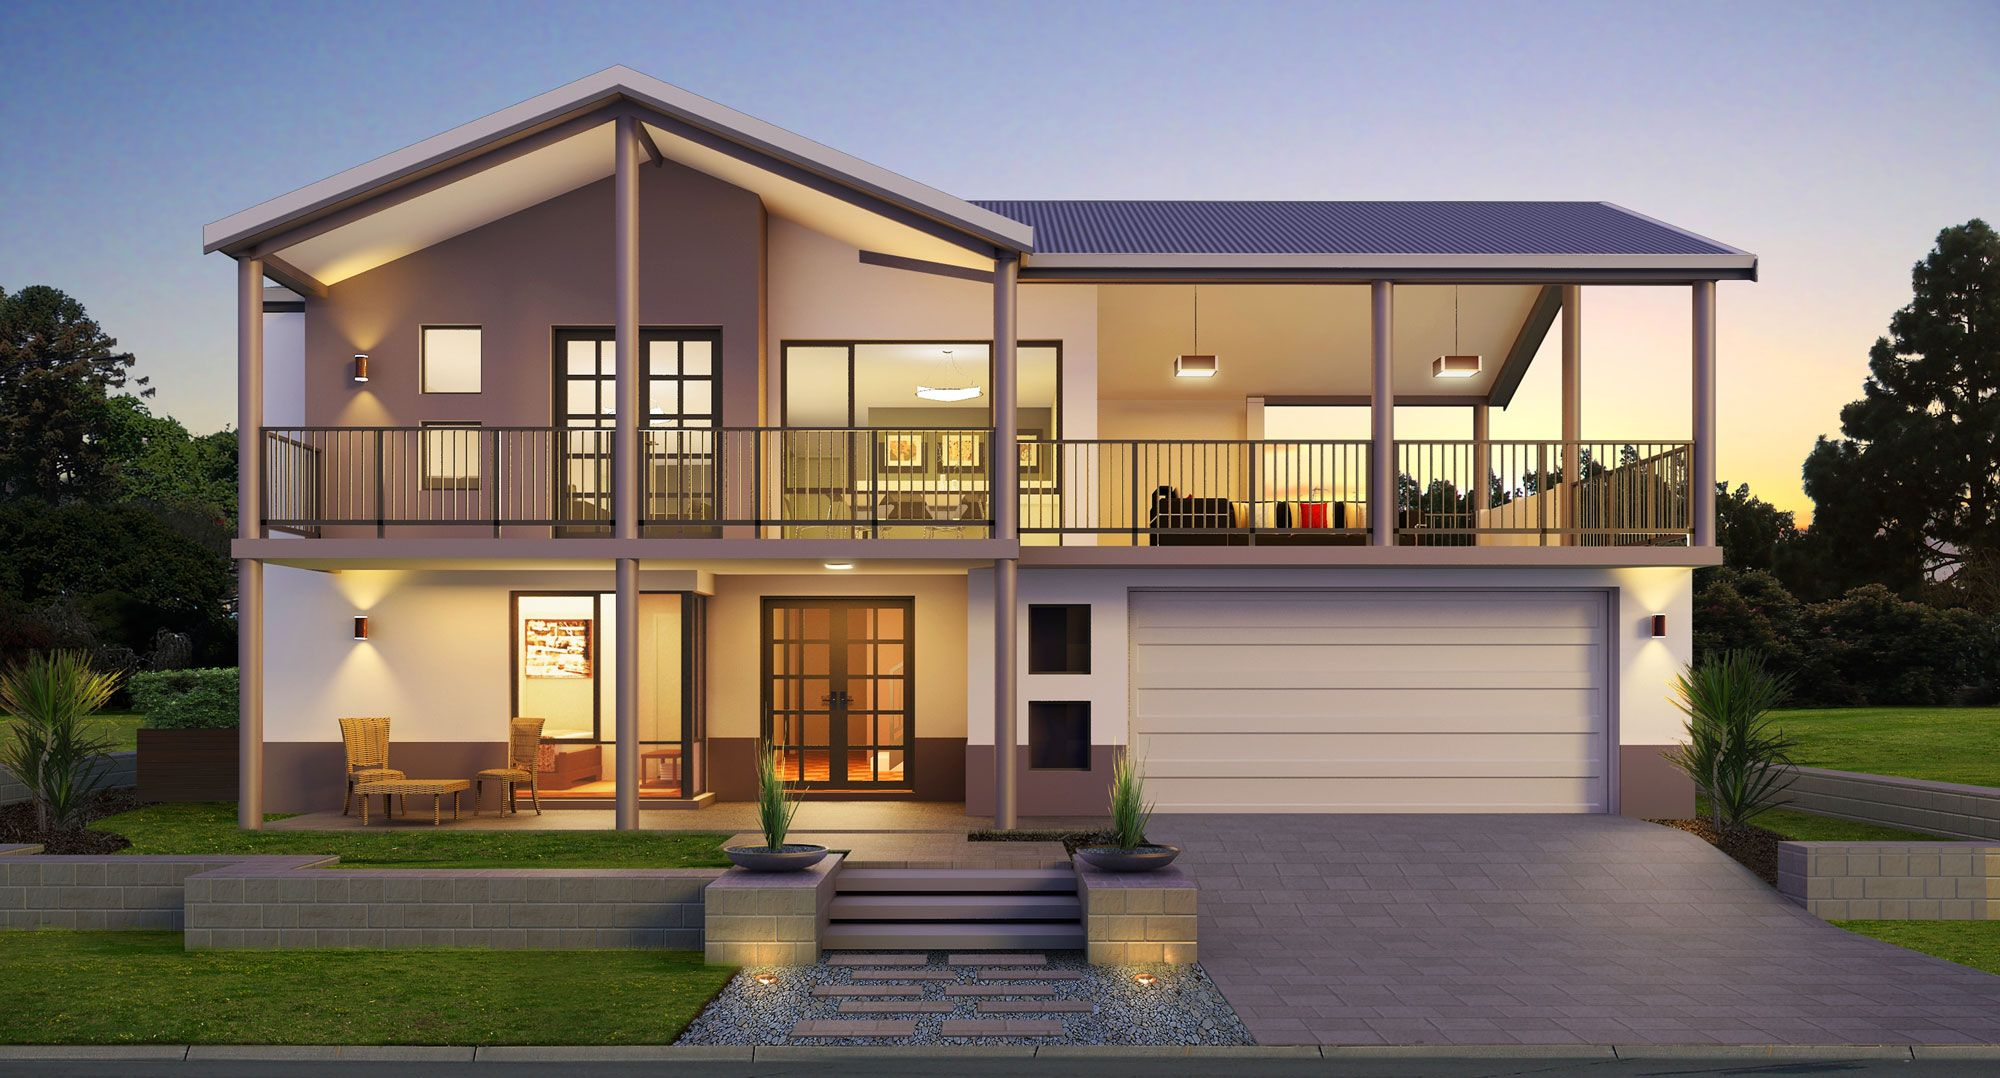 House designs panorama provincial also the two storey home builders rh pinterest